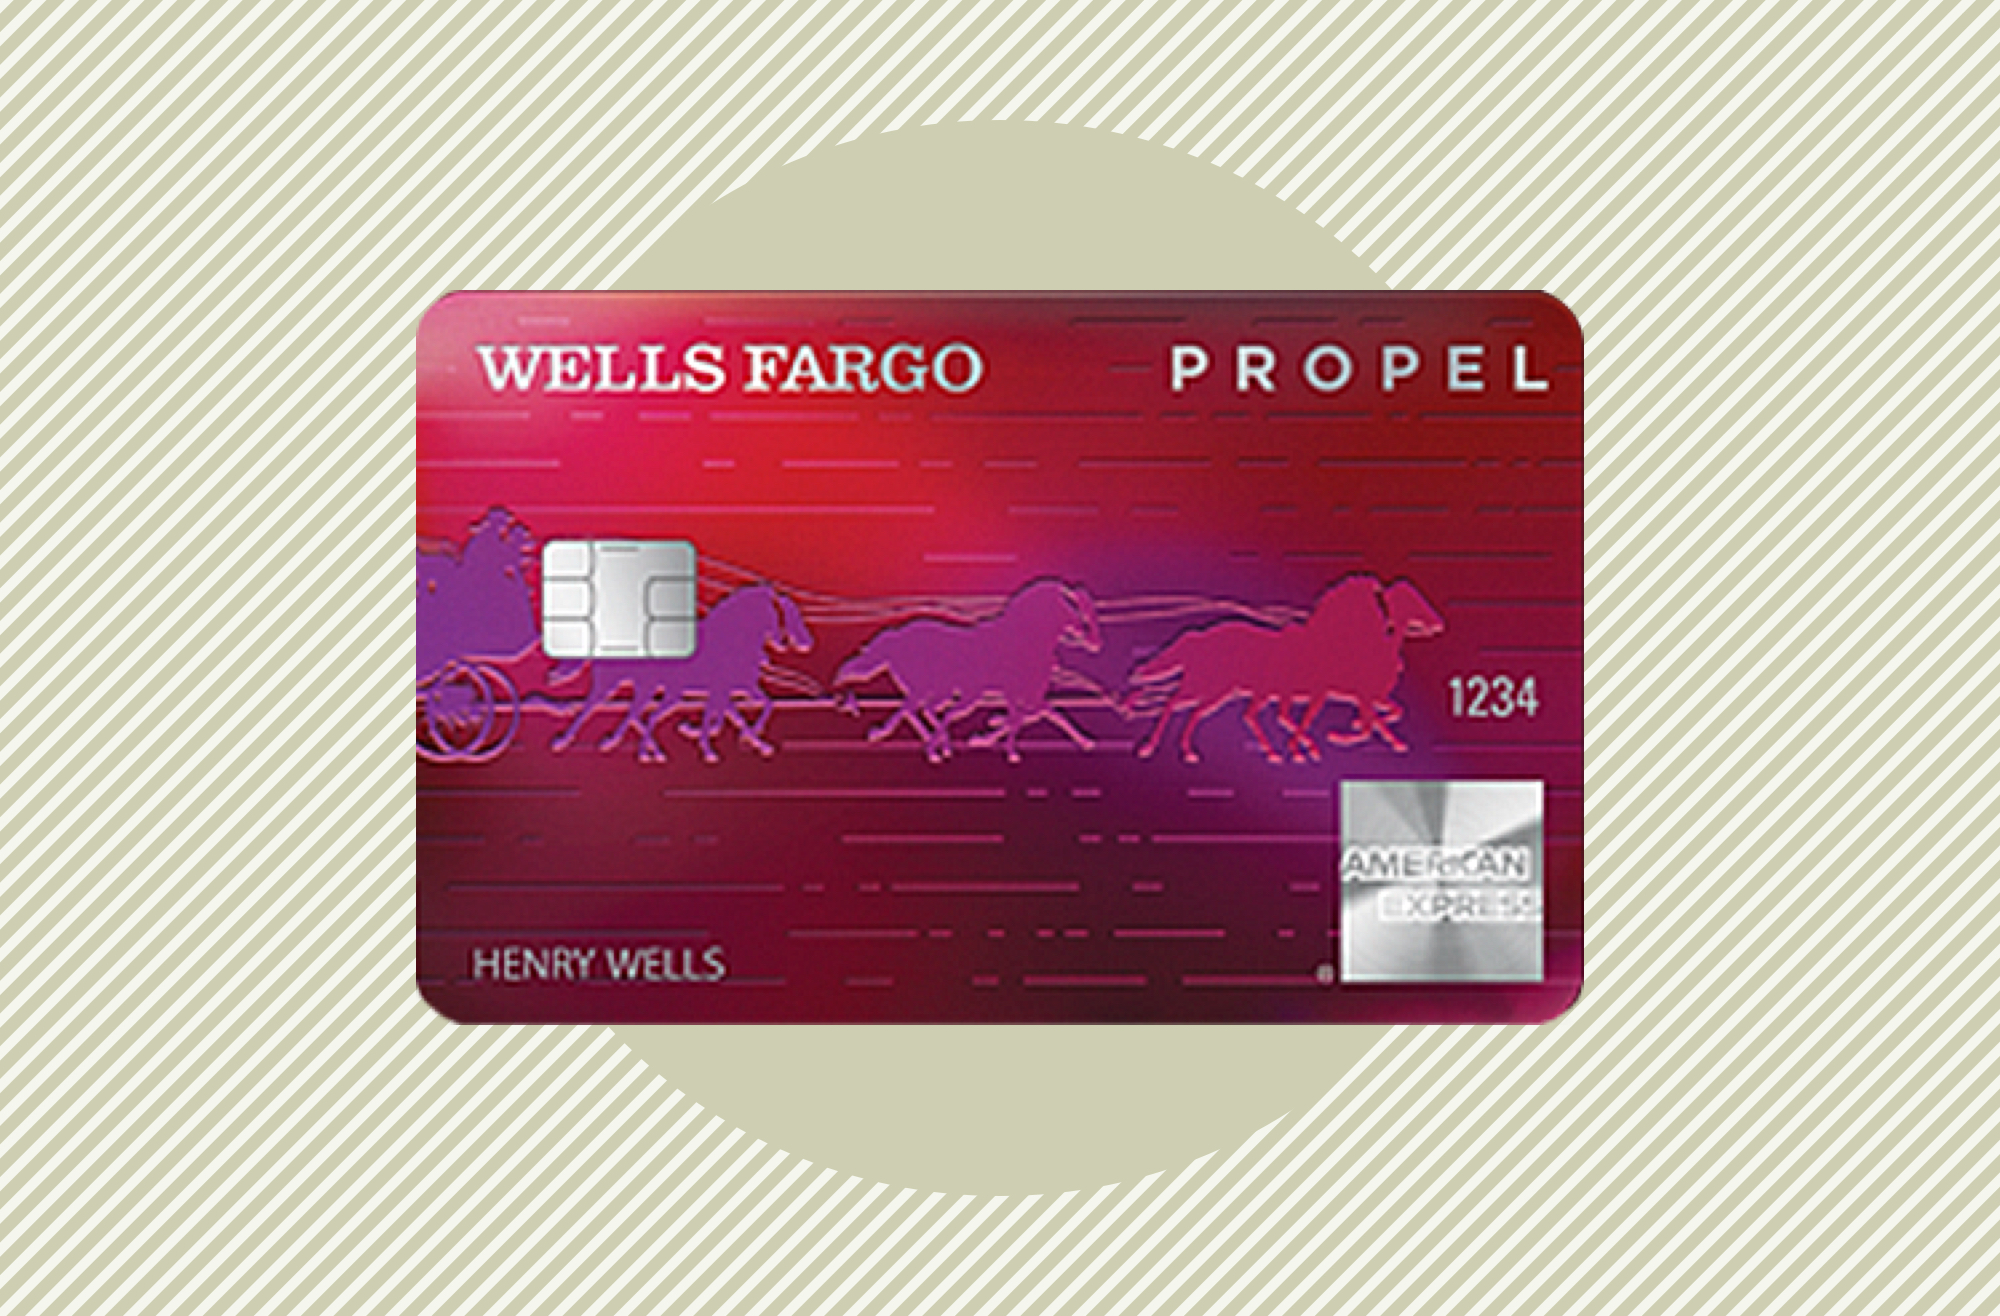 Wells Fargo Propel American Express Review NextAdvisor with TIME